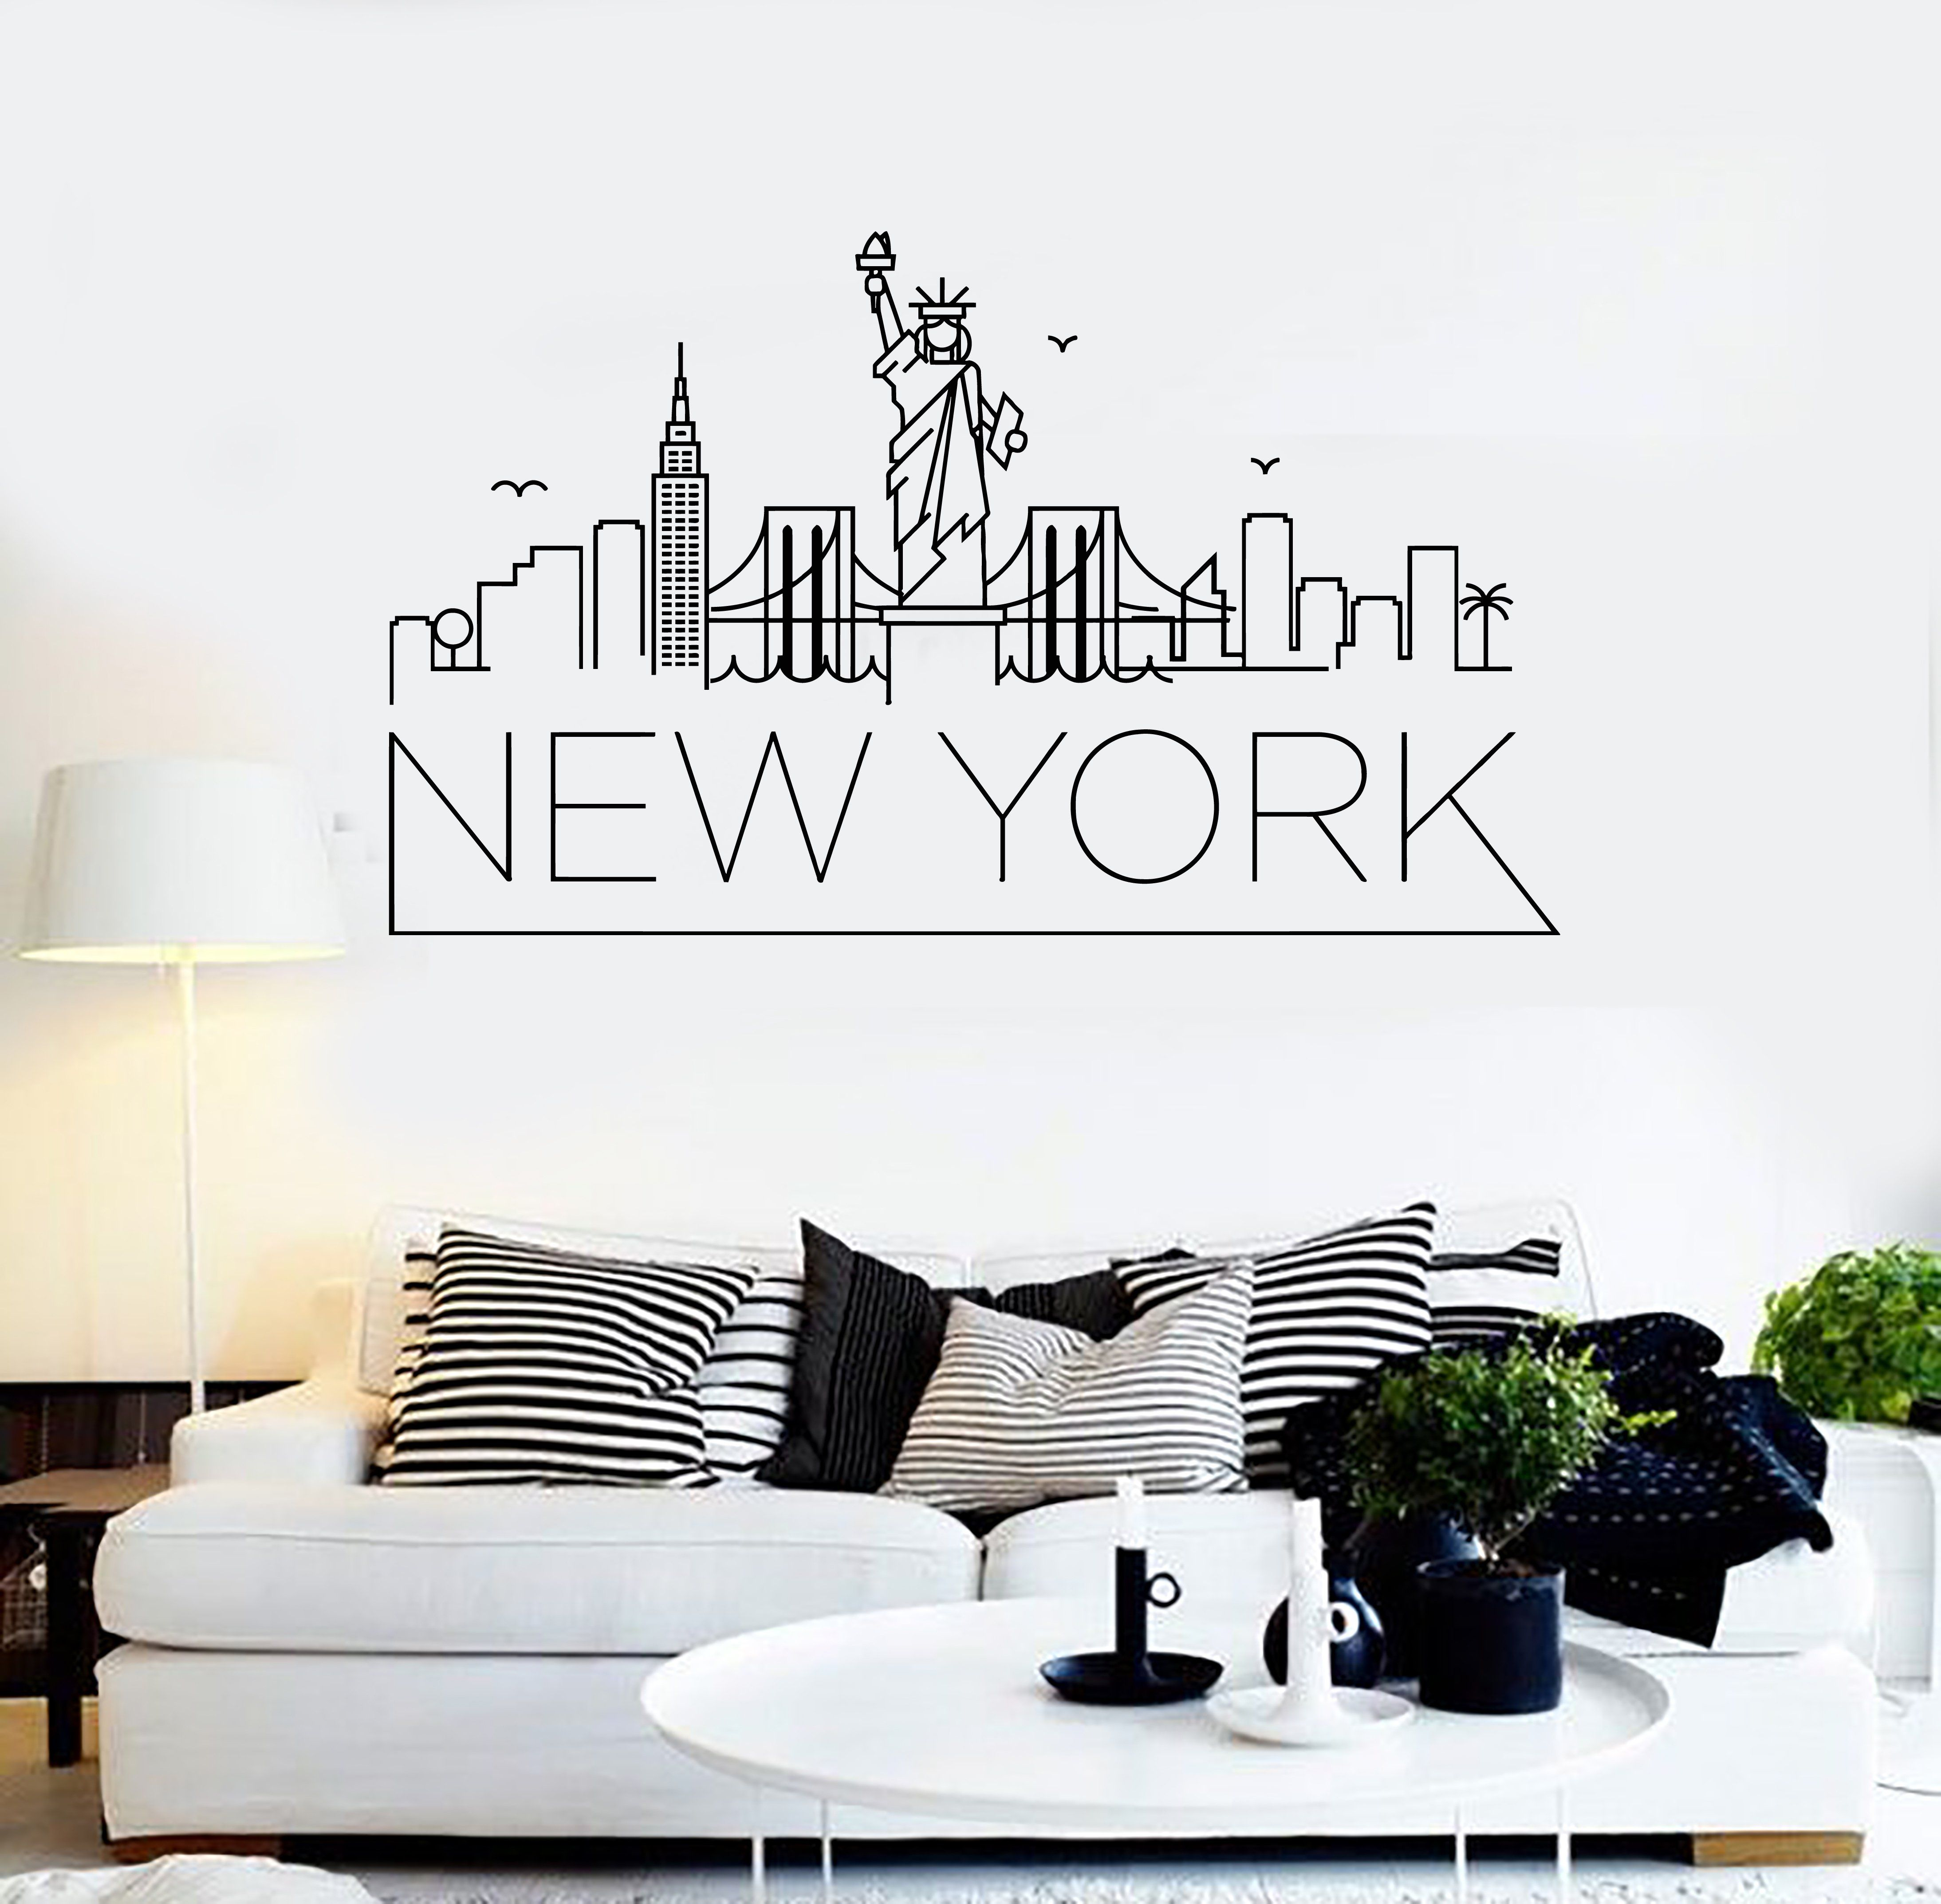 Sympathisch New York Wandtattoo Referenz Von City Skyline Silhouette | Apartment Goals |